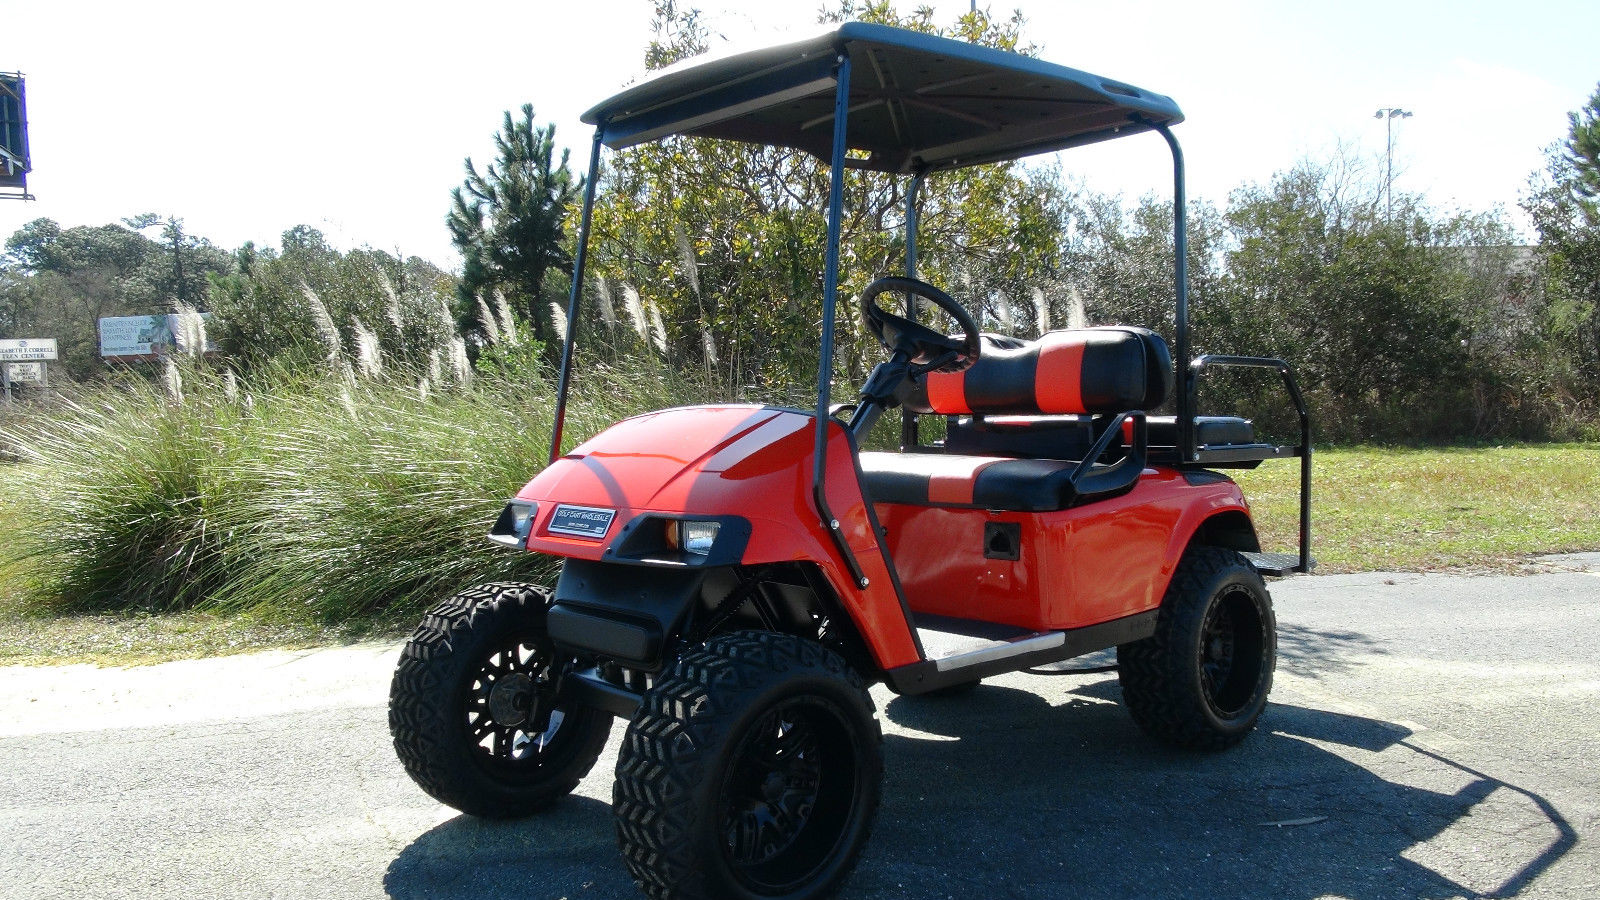 Sti Hd5 14 Black Beadlock Wheels together with Watch moreover 2016 Yamaha Ptv Electric Golf Cart also Lift 20Kits moreover Club Car Golf Cars. on yamaha golf cart tires